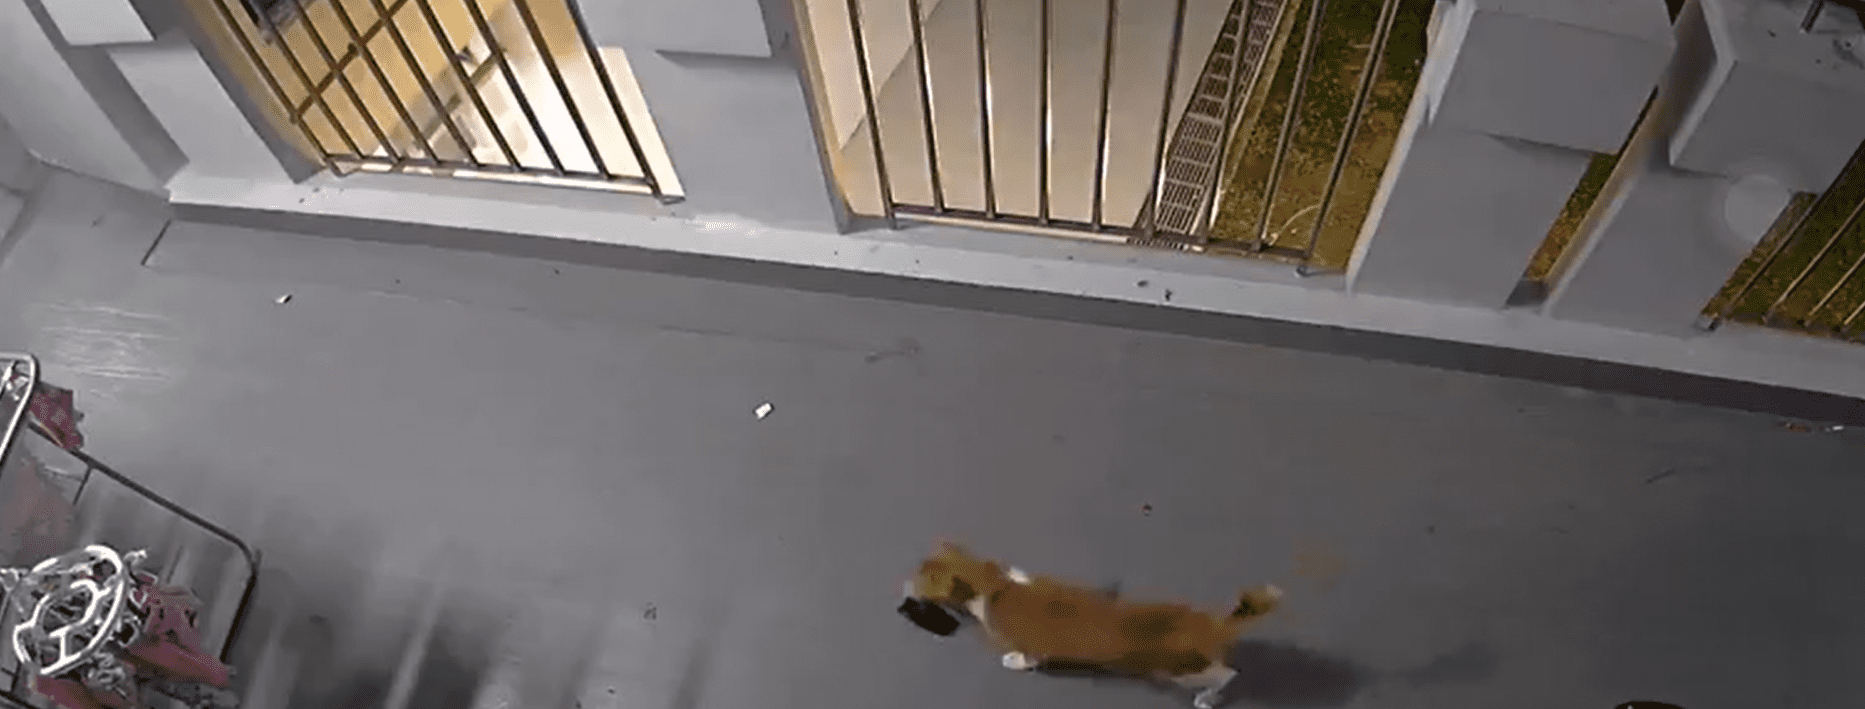 A cat walking through a corridor with a slipper in its mouth. │Source: twitter.com/amyramrn